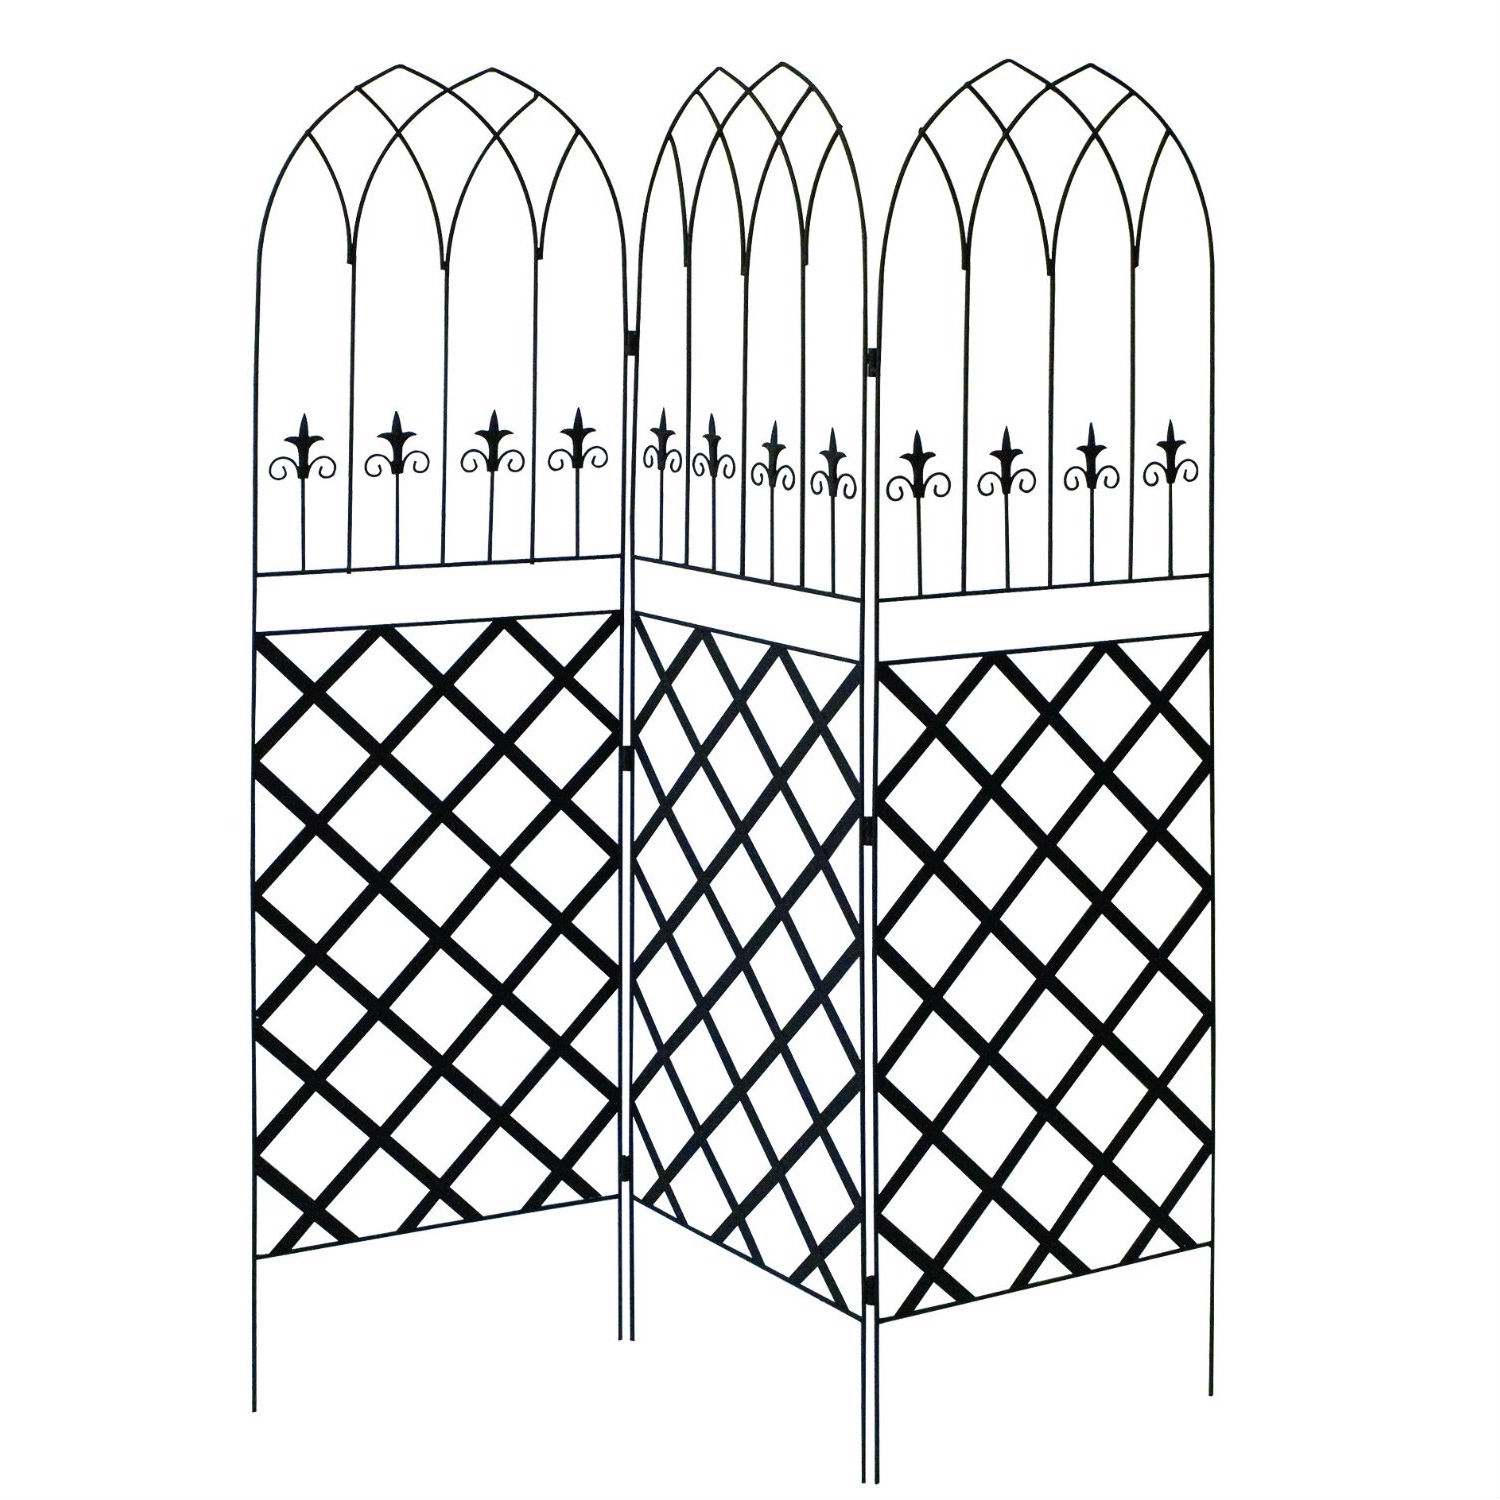 6-Ft High 3-Panel Black Metal Lattice Screen Garden Trellis, PGSTB83951 :  This 6-Ft High 3-Panel Black Metal Lattice Screen Garden Trellis has lattice work on the lower section and each top section has double gothic points with small spires that evoke a fleur de lis. This screen installs in the ground easily to create a backyard partition or to camouflage an unsightly appliance.